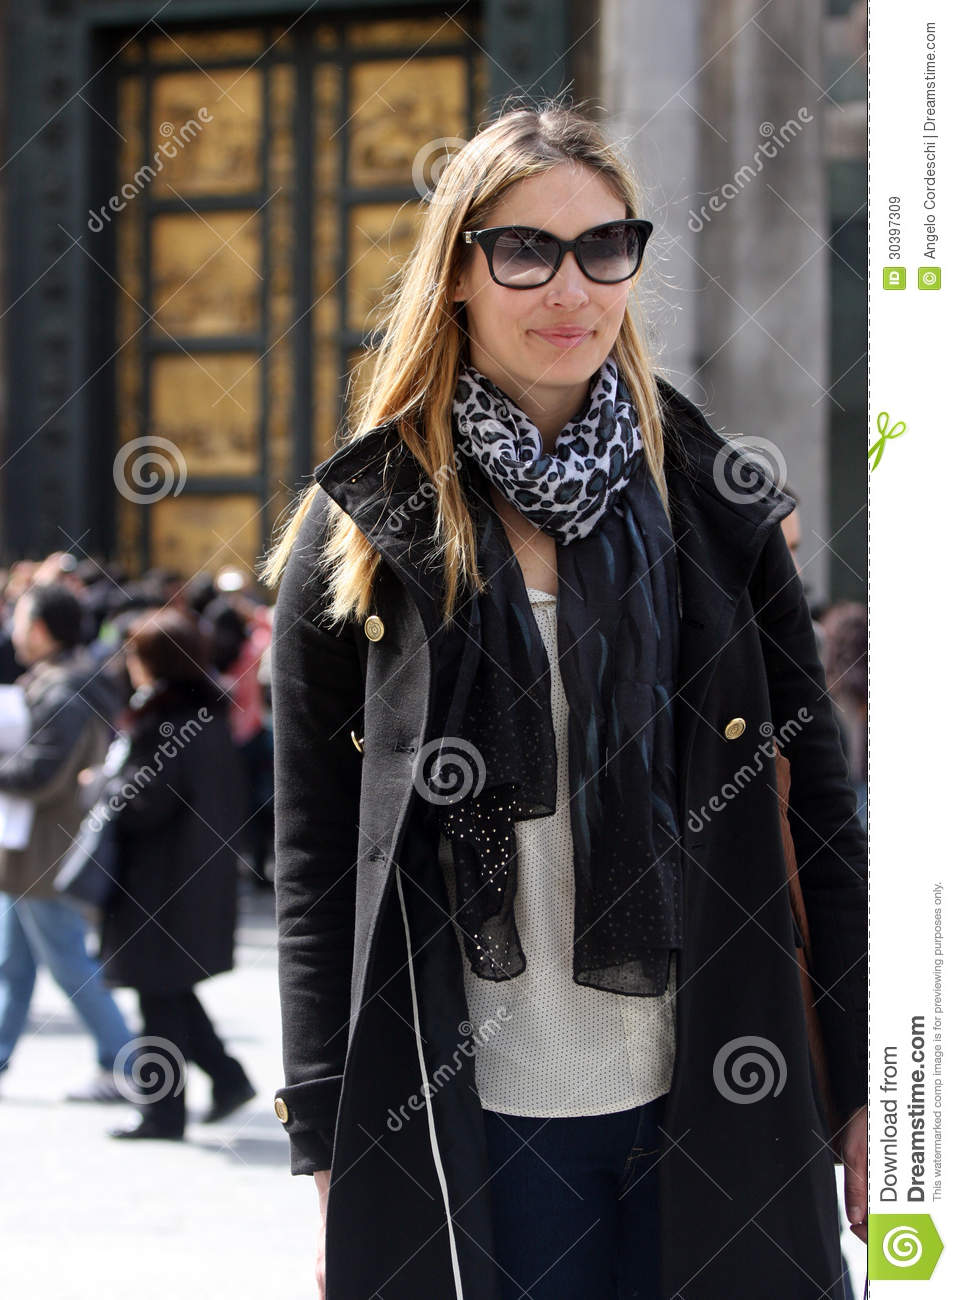 Fashionable woman with coat, bag, scarf and sunglasses